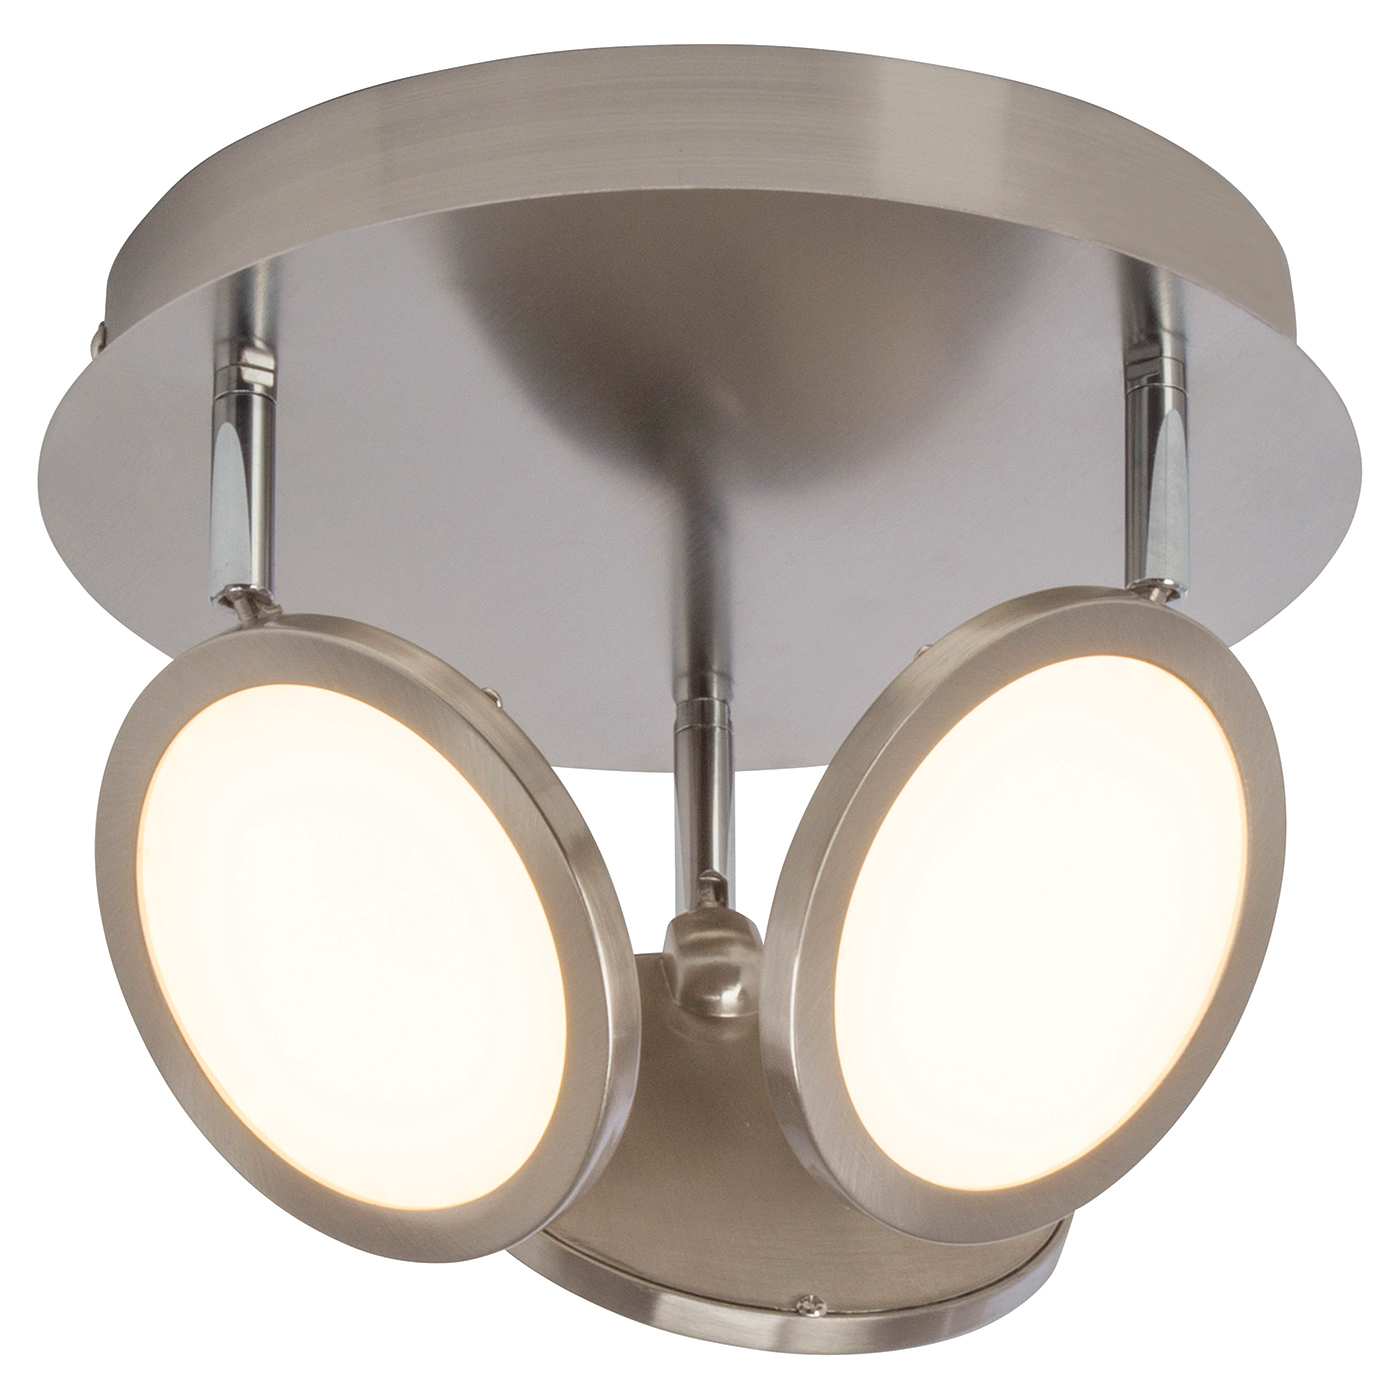 Endon Pluto ceiling spotlight round 3x 5W Satin nickel effect plate opal plastic Thumbnail 1